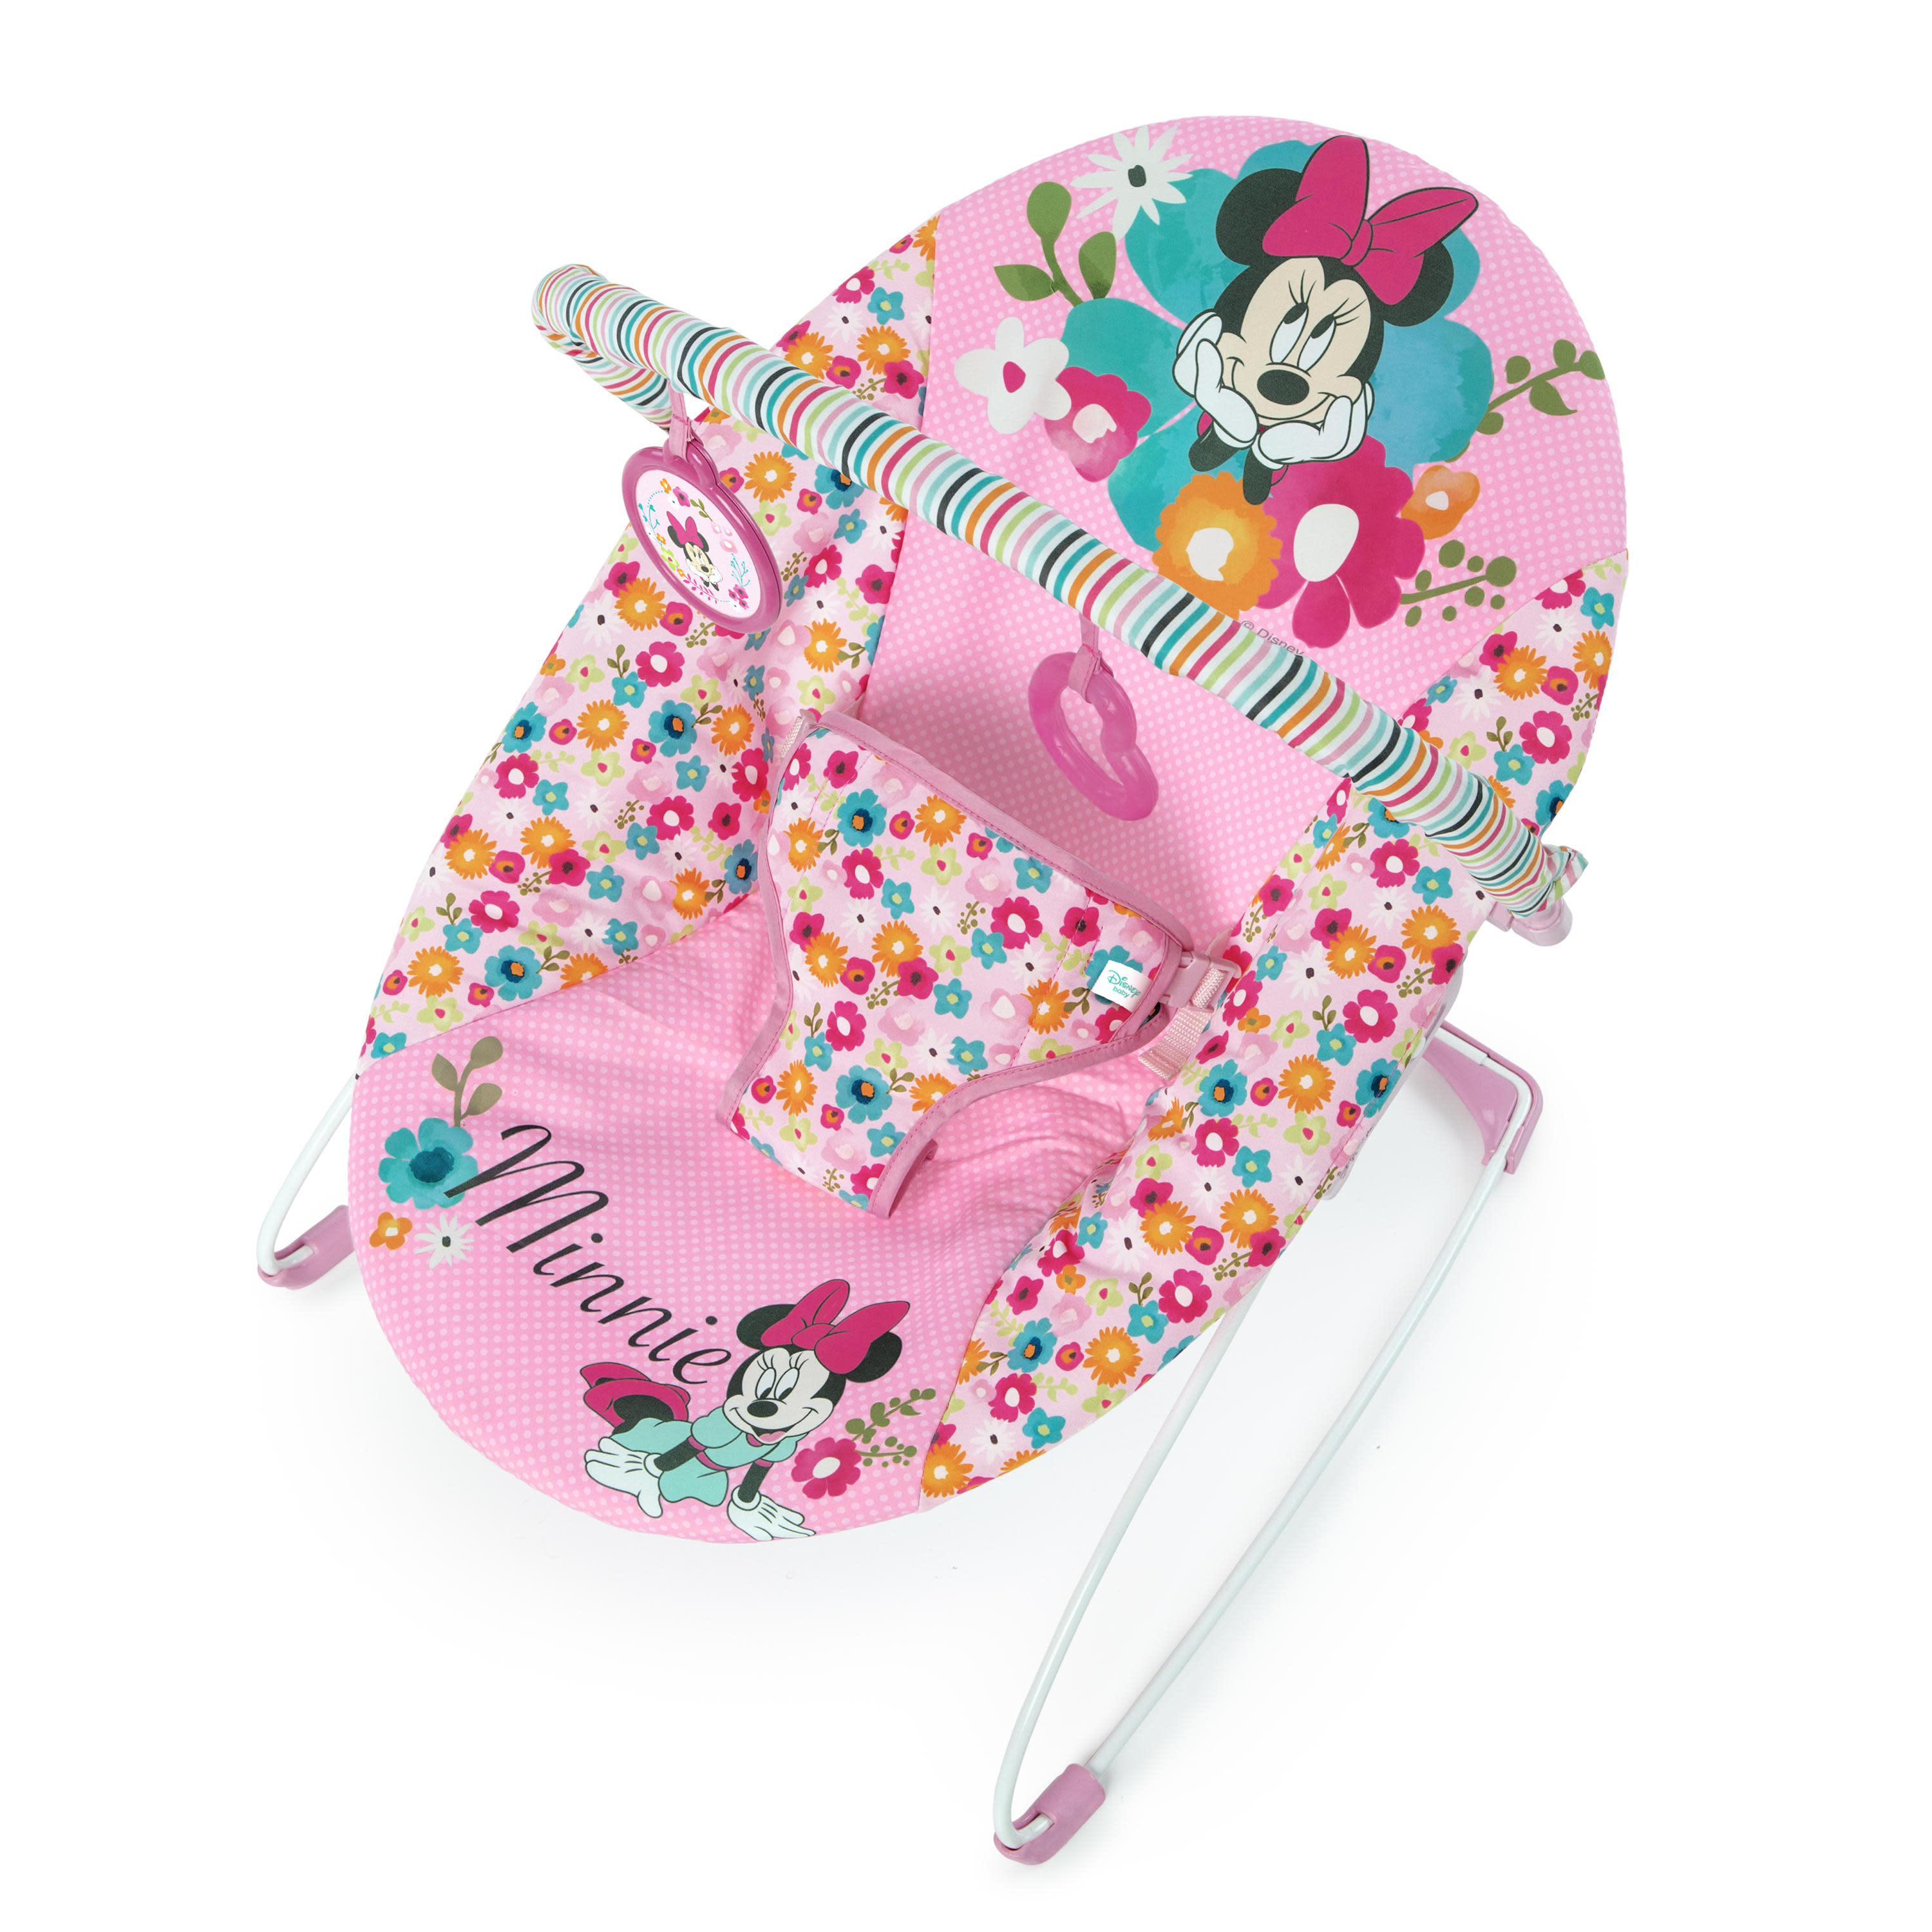 Disney Baby Minnie Mouse Bouncer Seat- Perfect in Pink